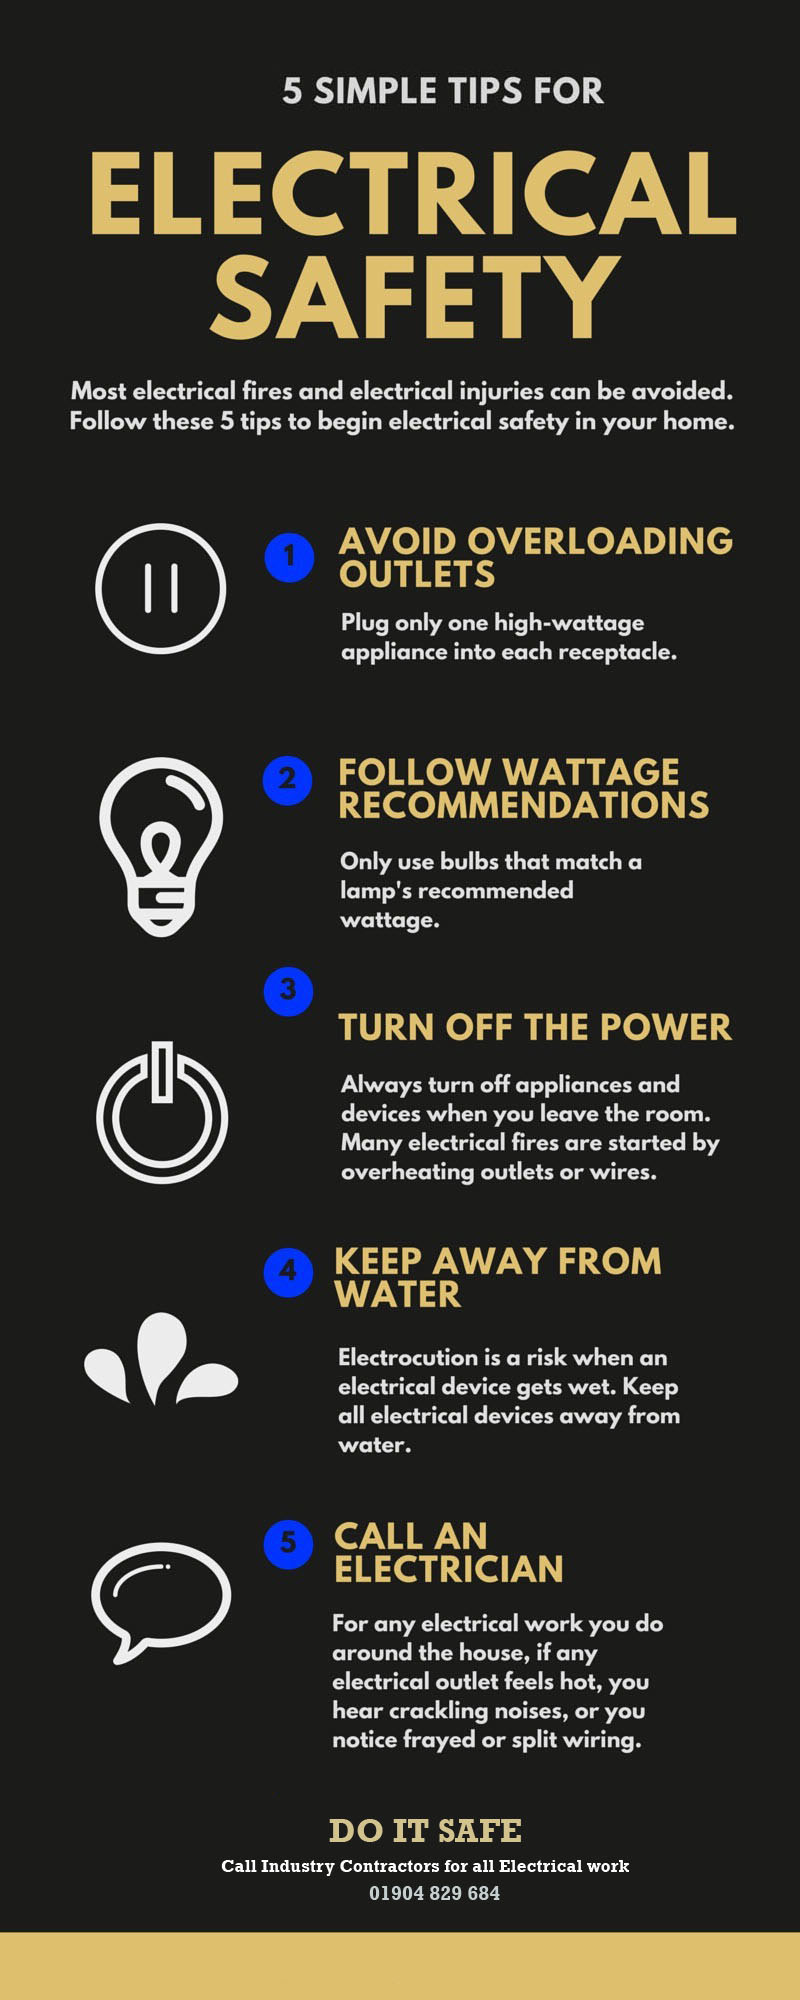 Five Tips You Need To Know About Electricians Bw Long View South Wiring Money Safety There Are Particular Questions That We Should Ask An Electrical Contractor Making Our House Extra Safe And Save At The Very Same Time